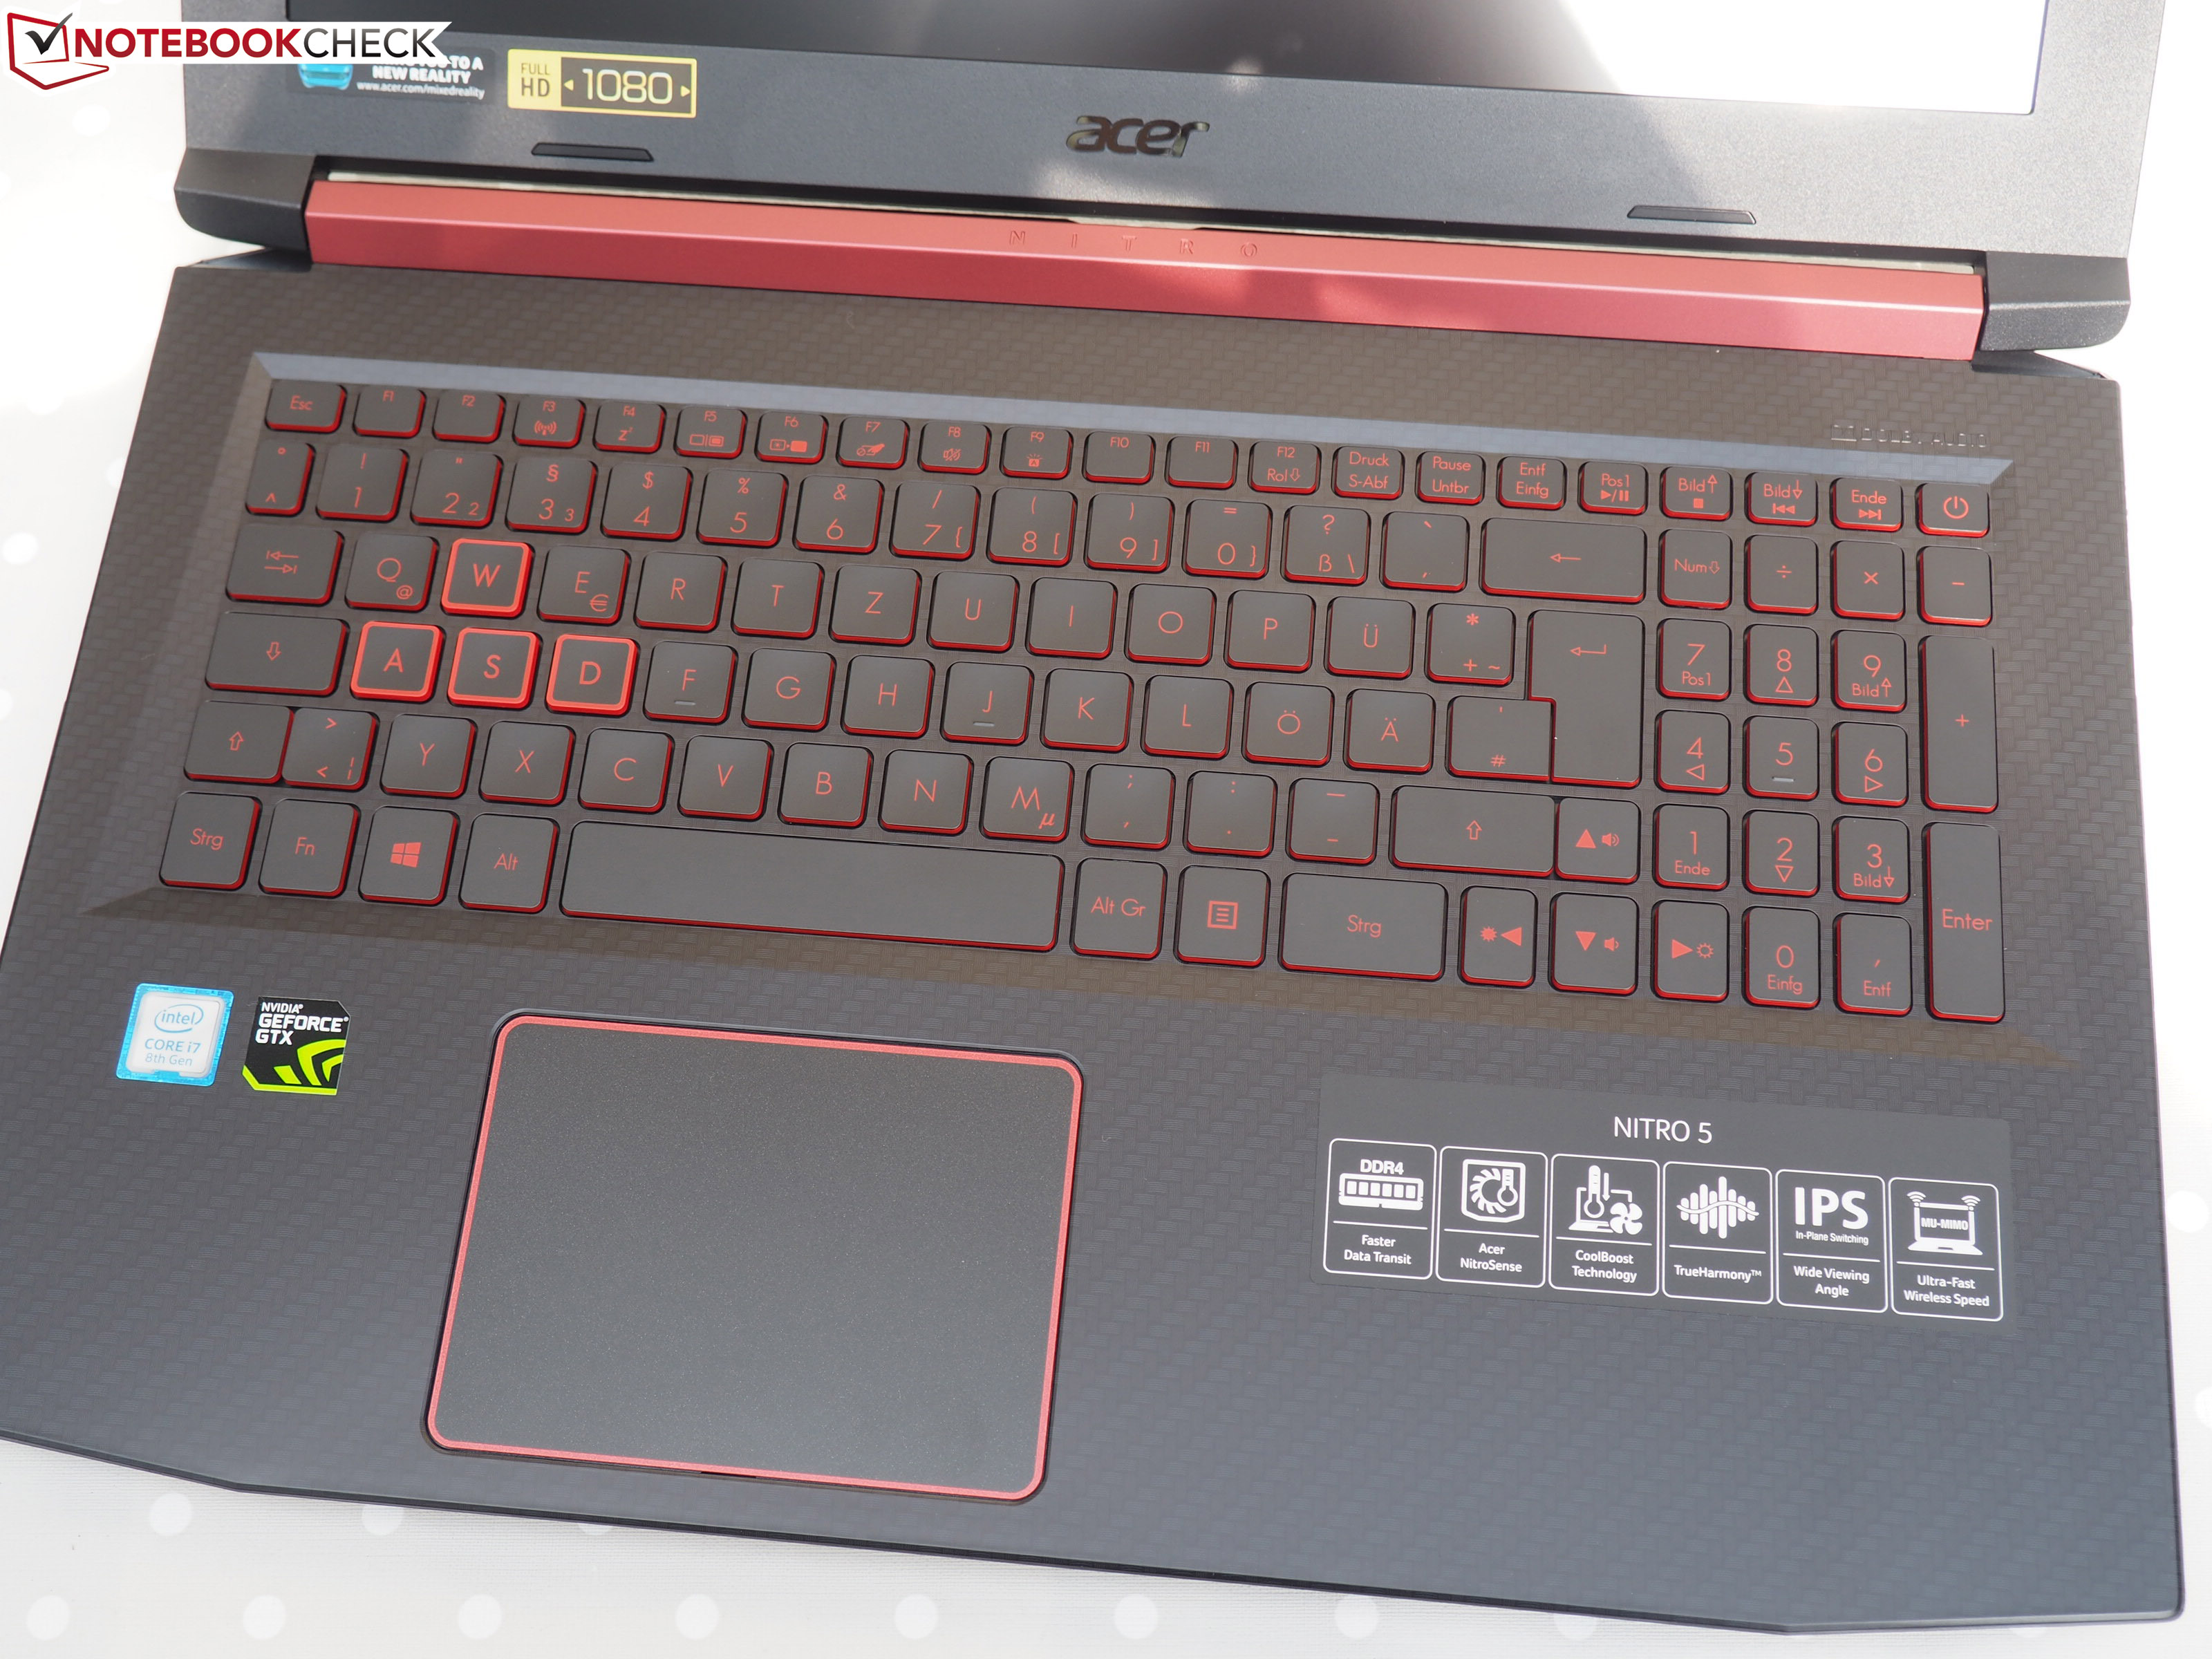 Acer Nitro 5 (i7-8750H, GTX 1050 Ti, FHD) Laptop Review